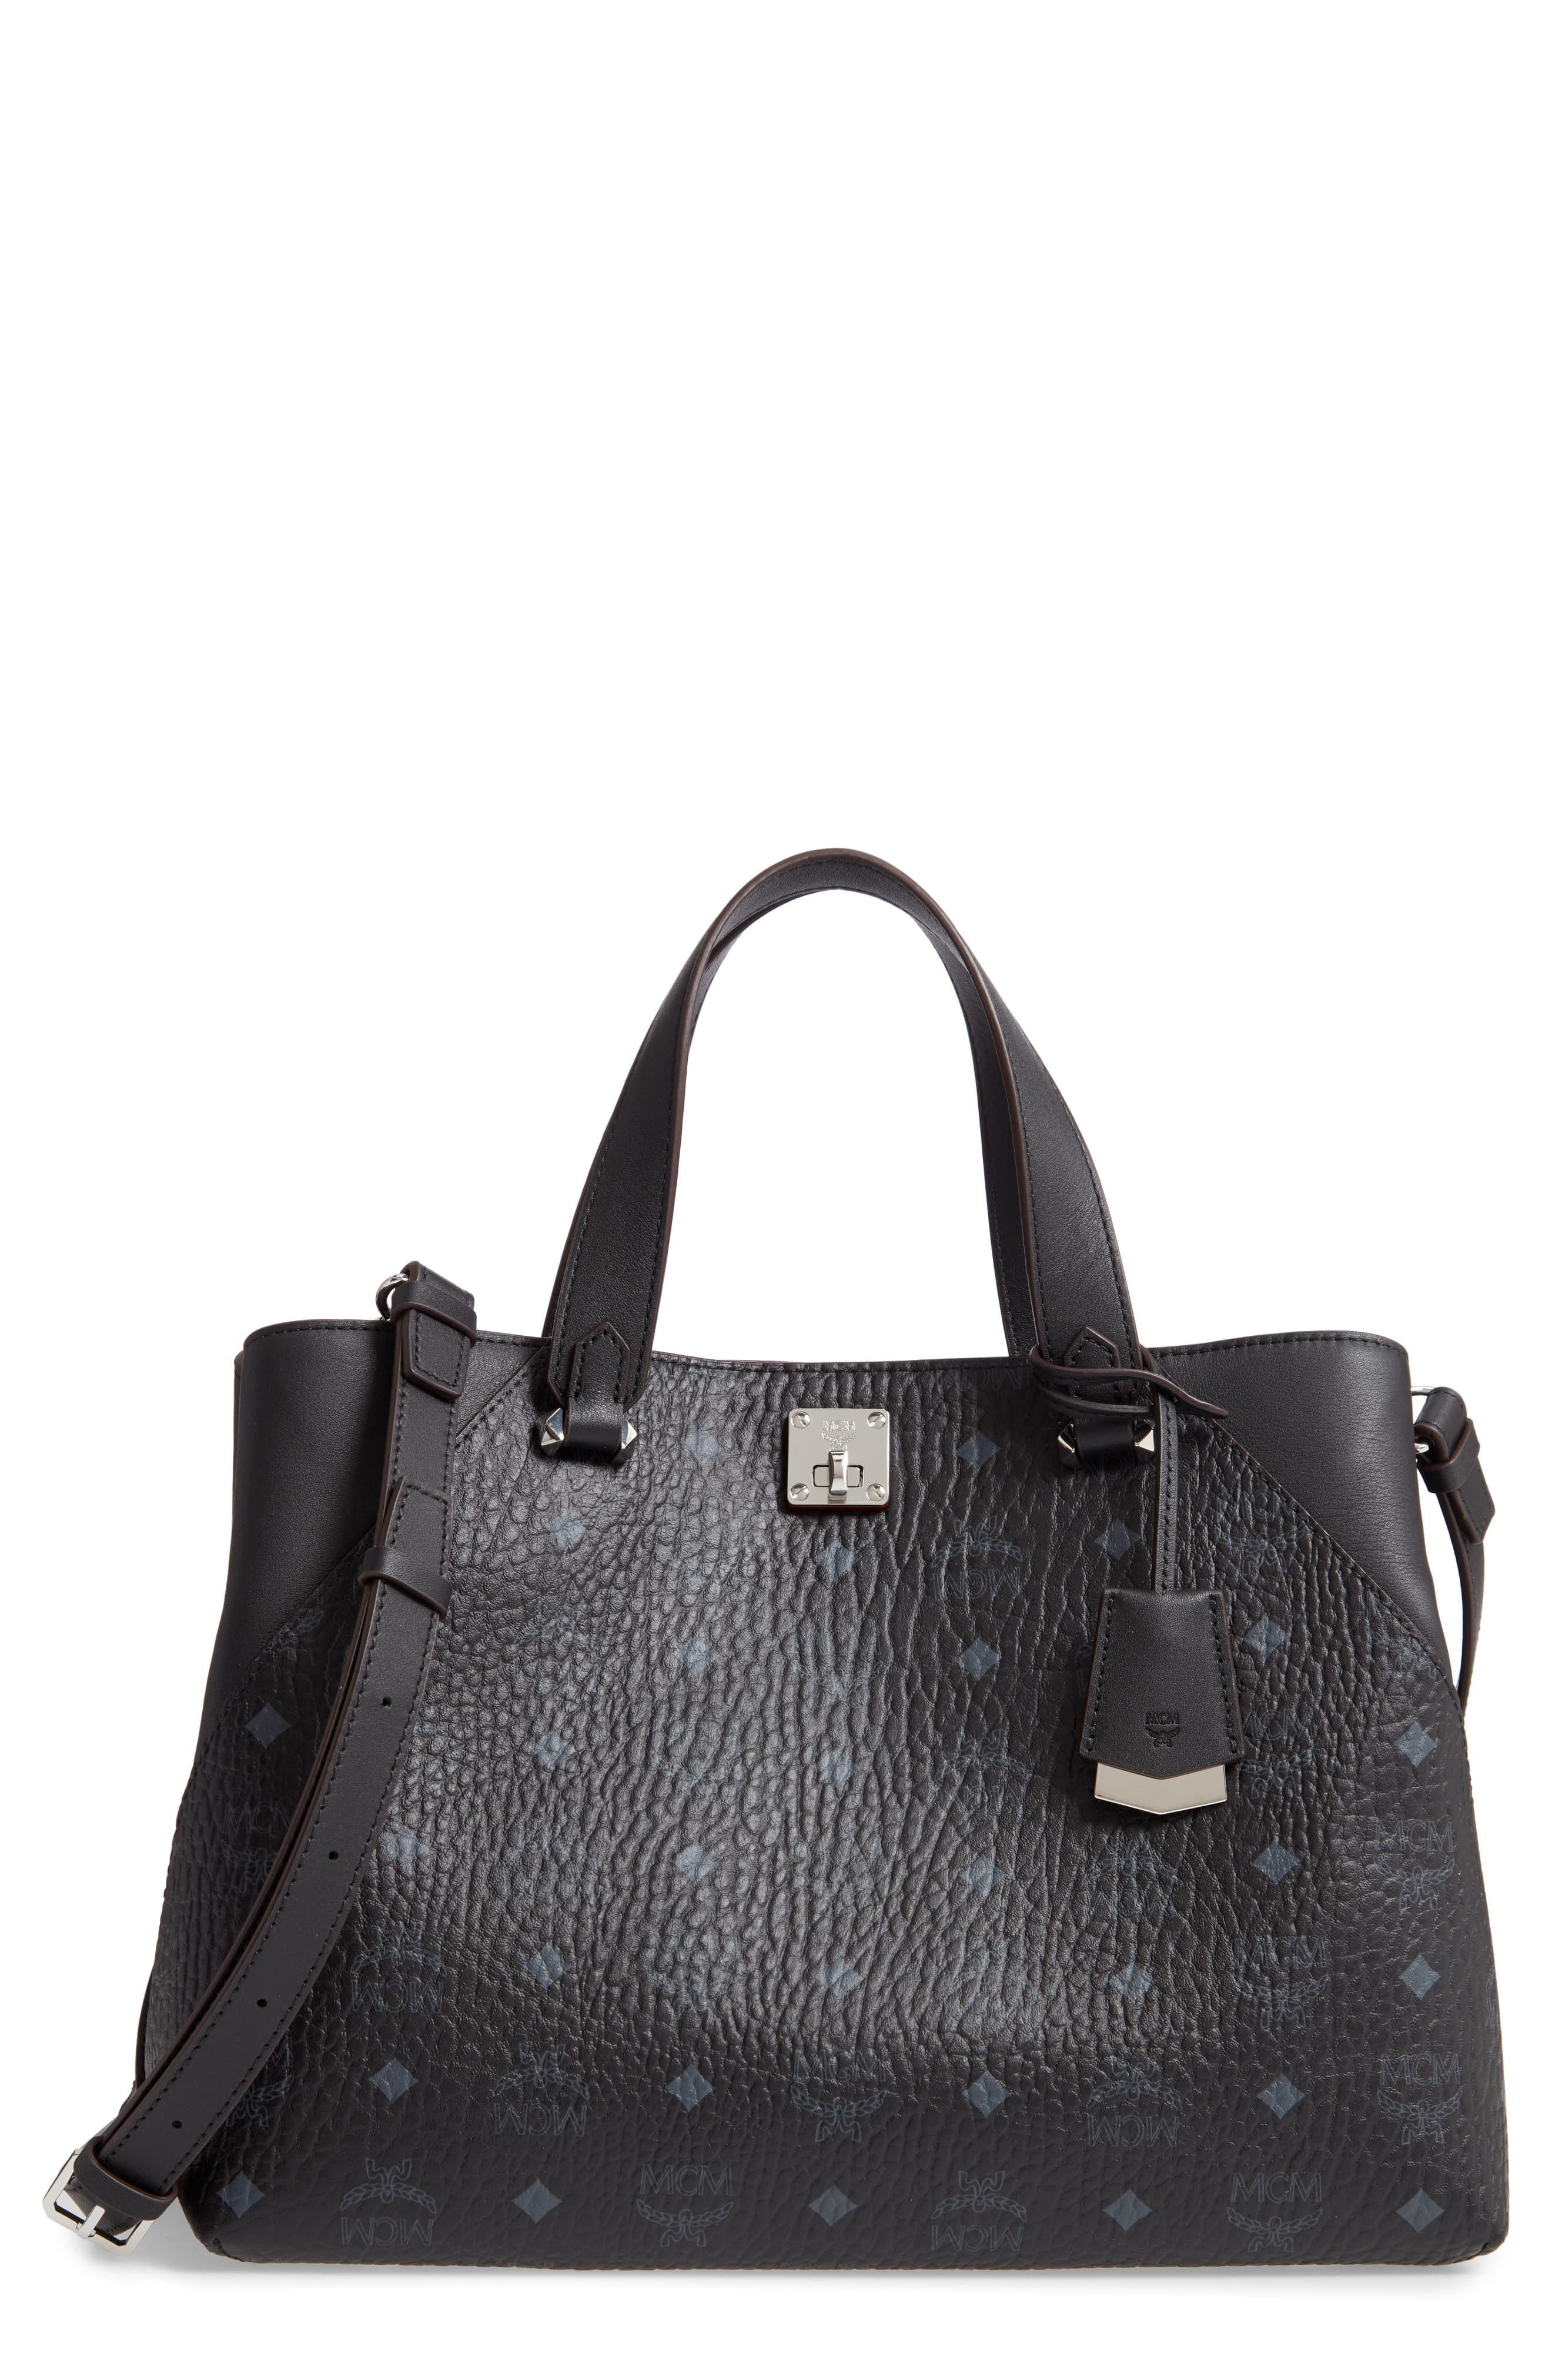 b59d77e8d06 MCM Large Visetos Coated Canvas Tote in Black - Save 17% - Lyst